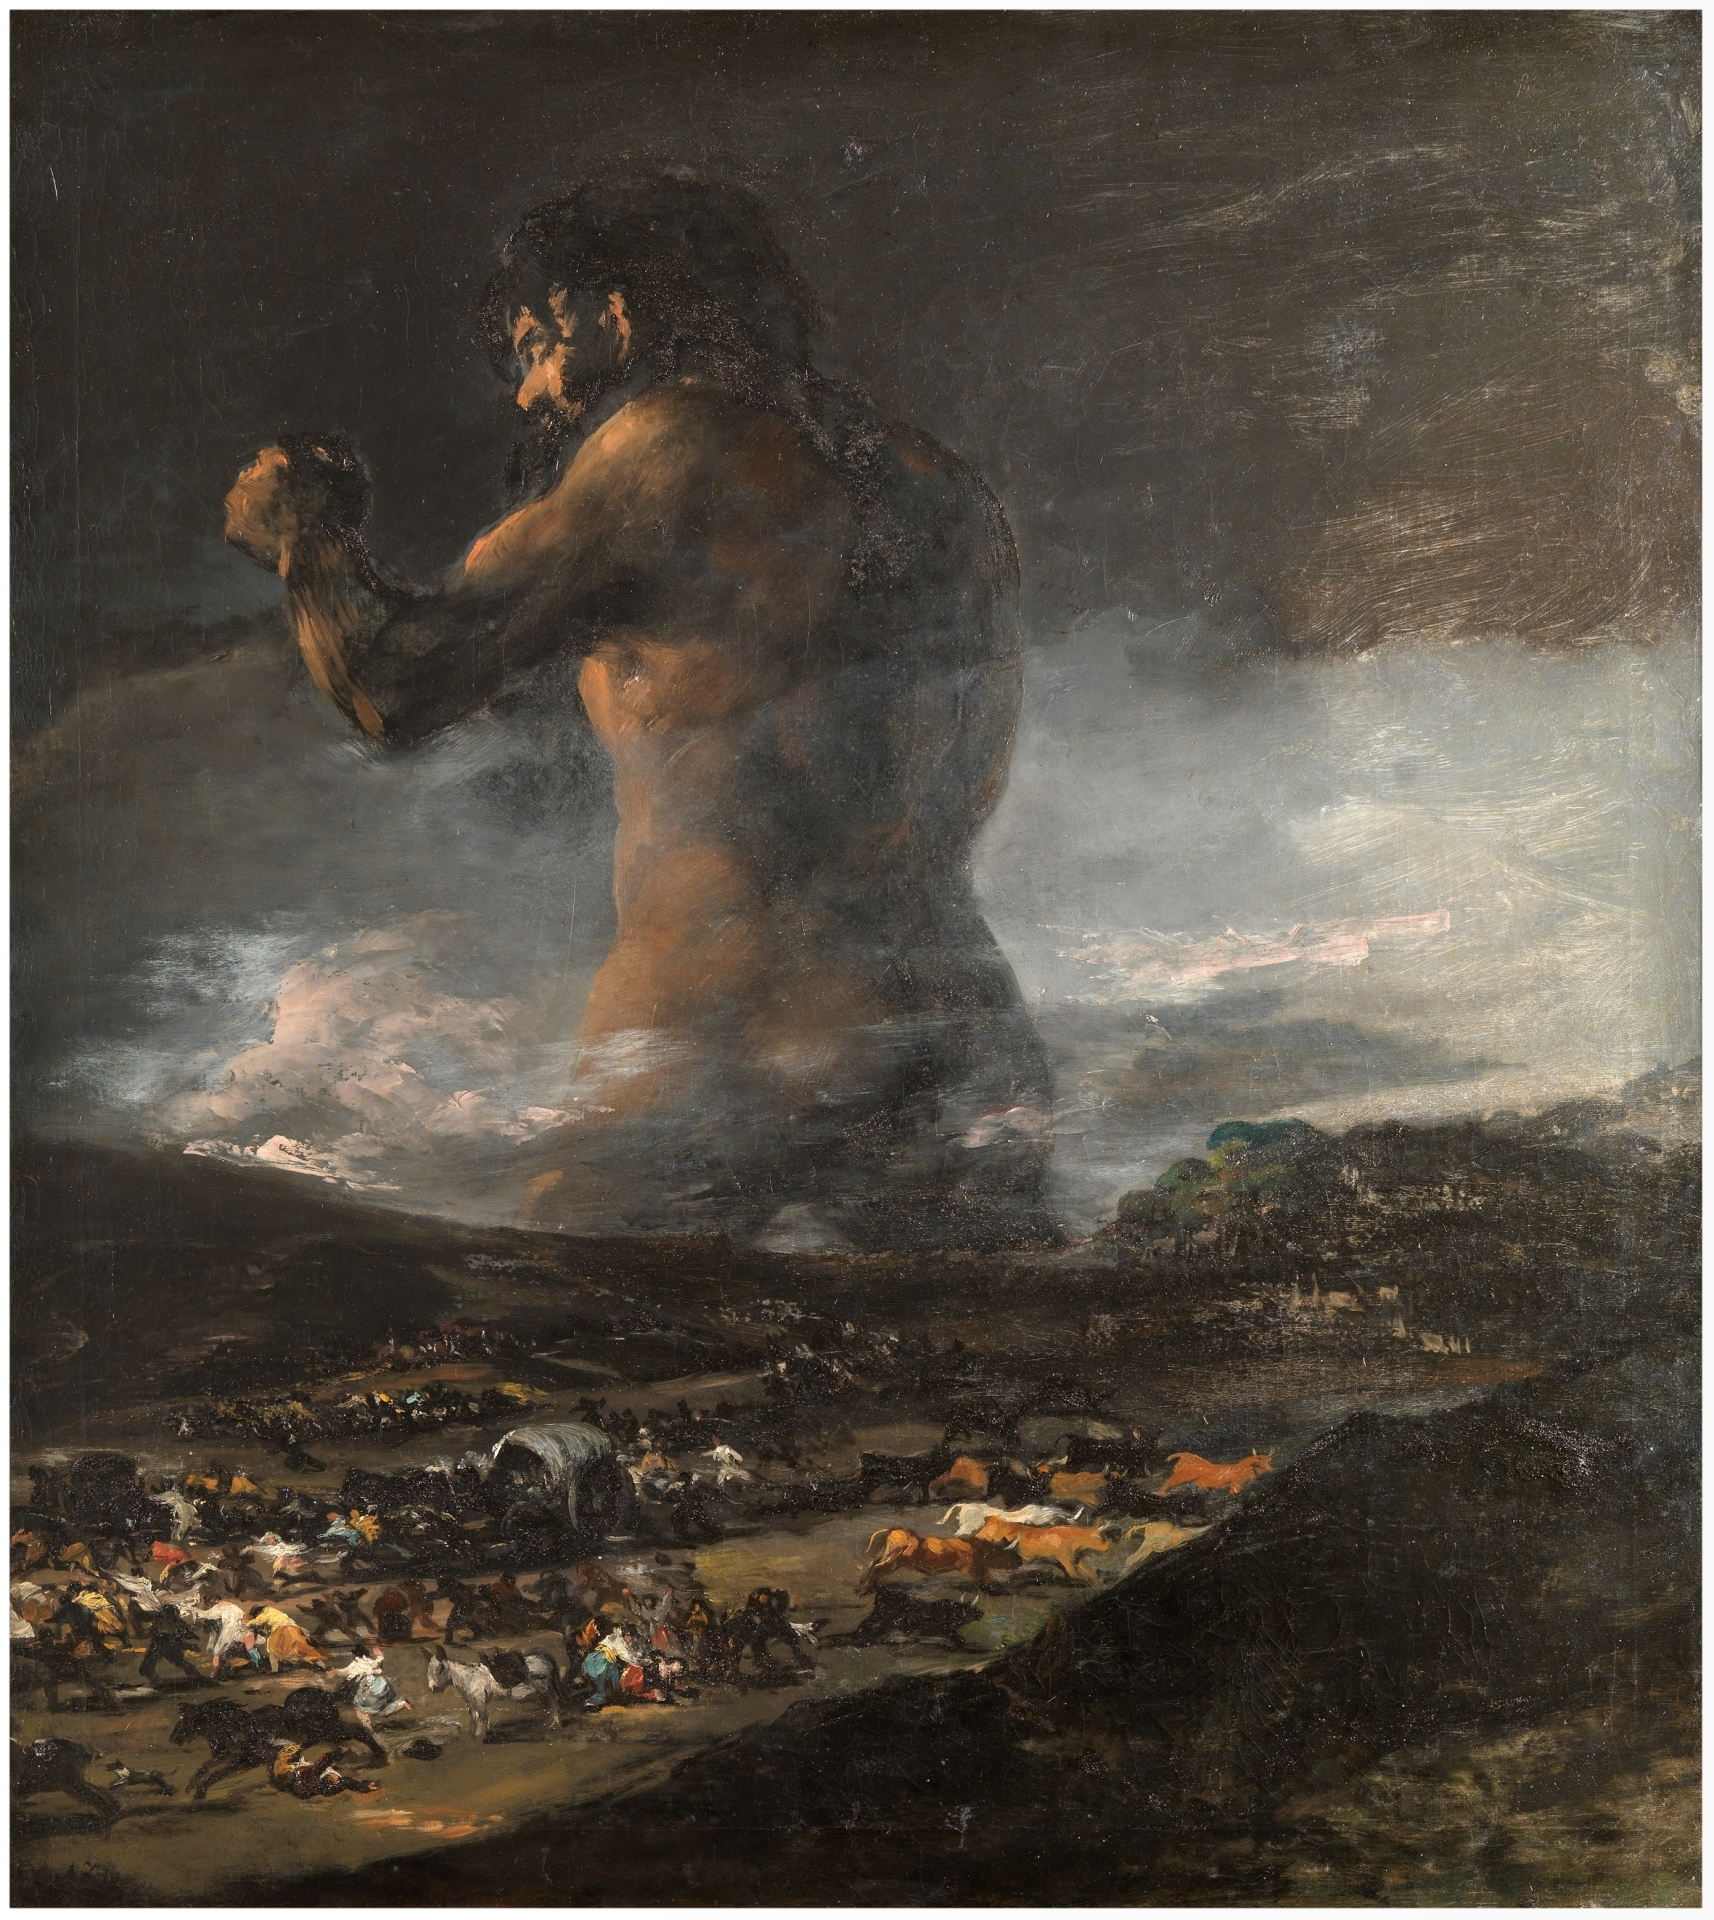 The Colossus The Collection Museo Nacional Del Prado - Francisco goya paintings